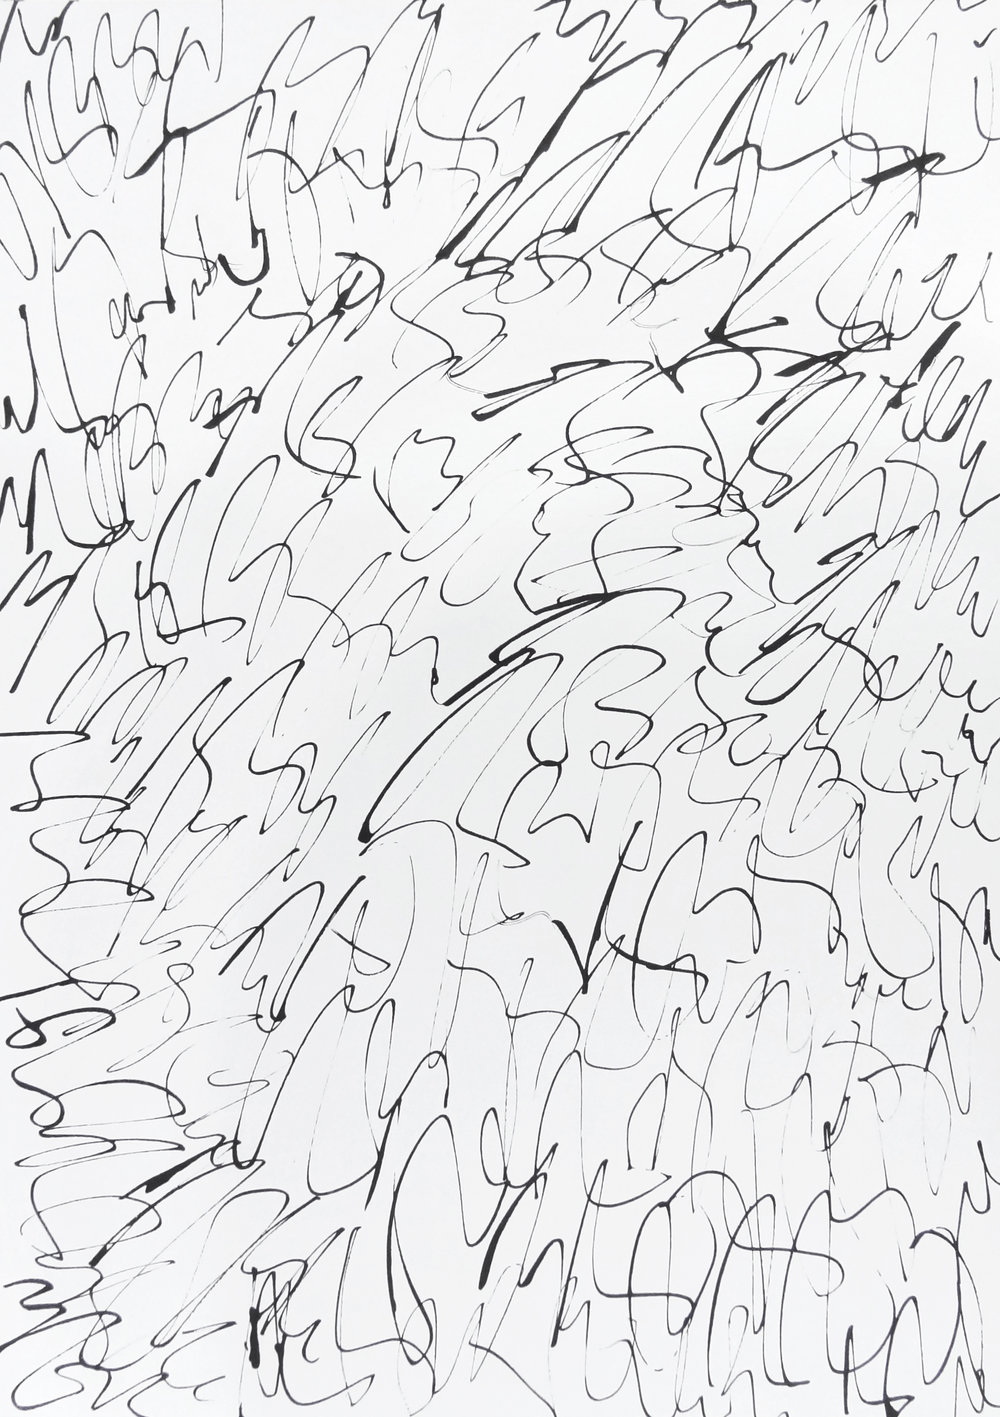 rhythm and flow studies, 2019 calligraphy ink on paper 42,0 x 29,7 cm (6-19)